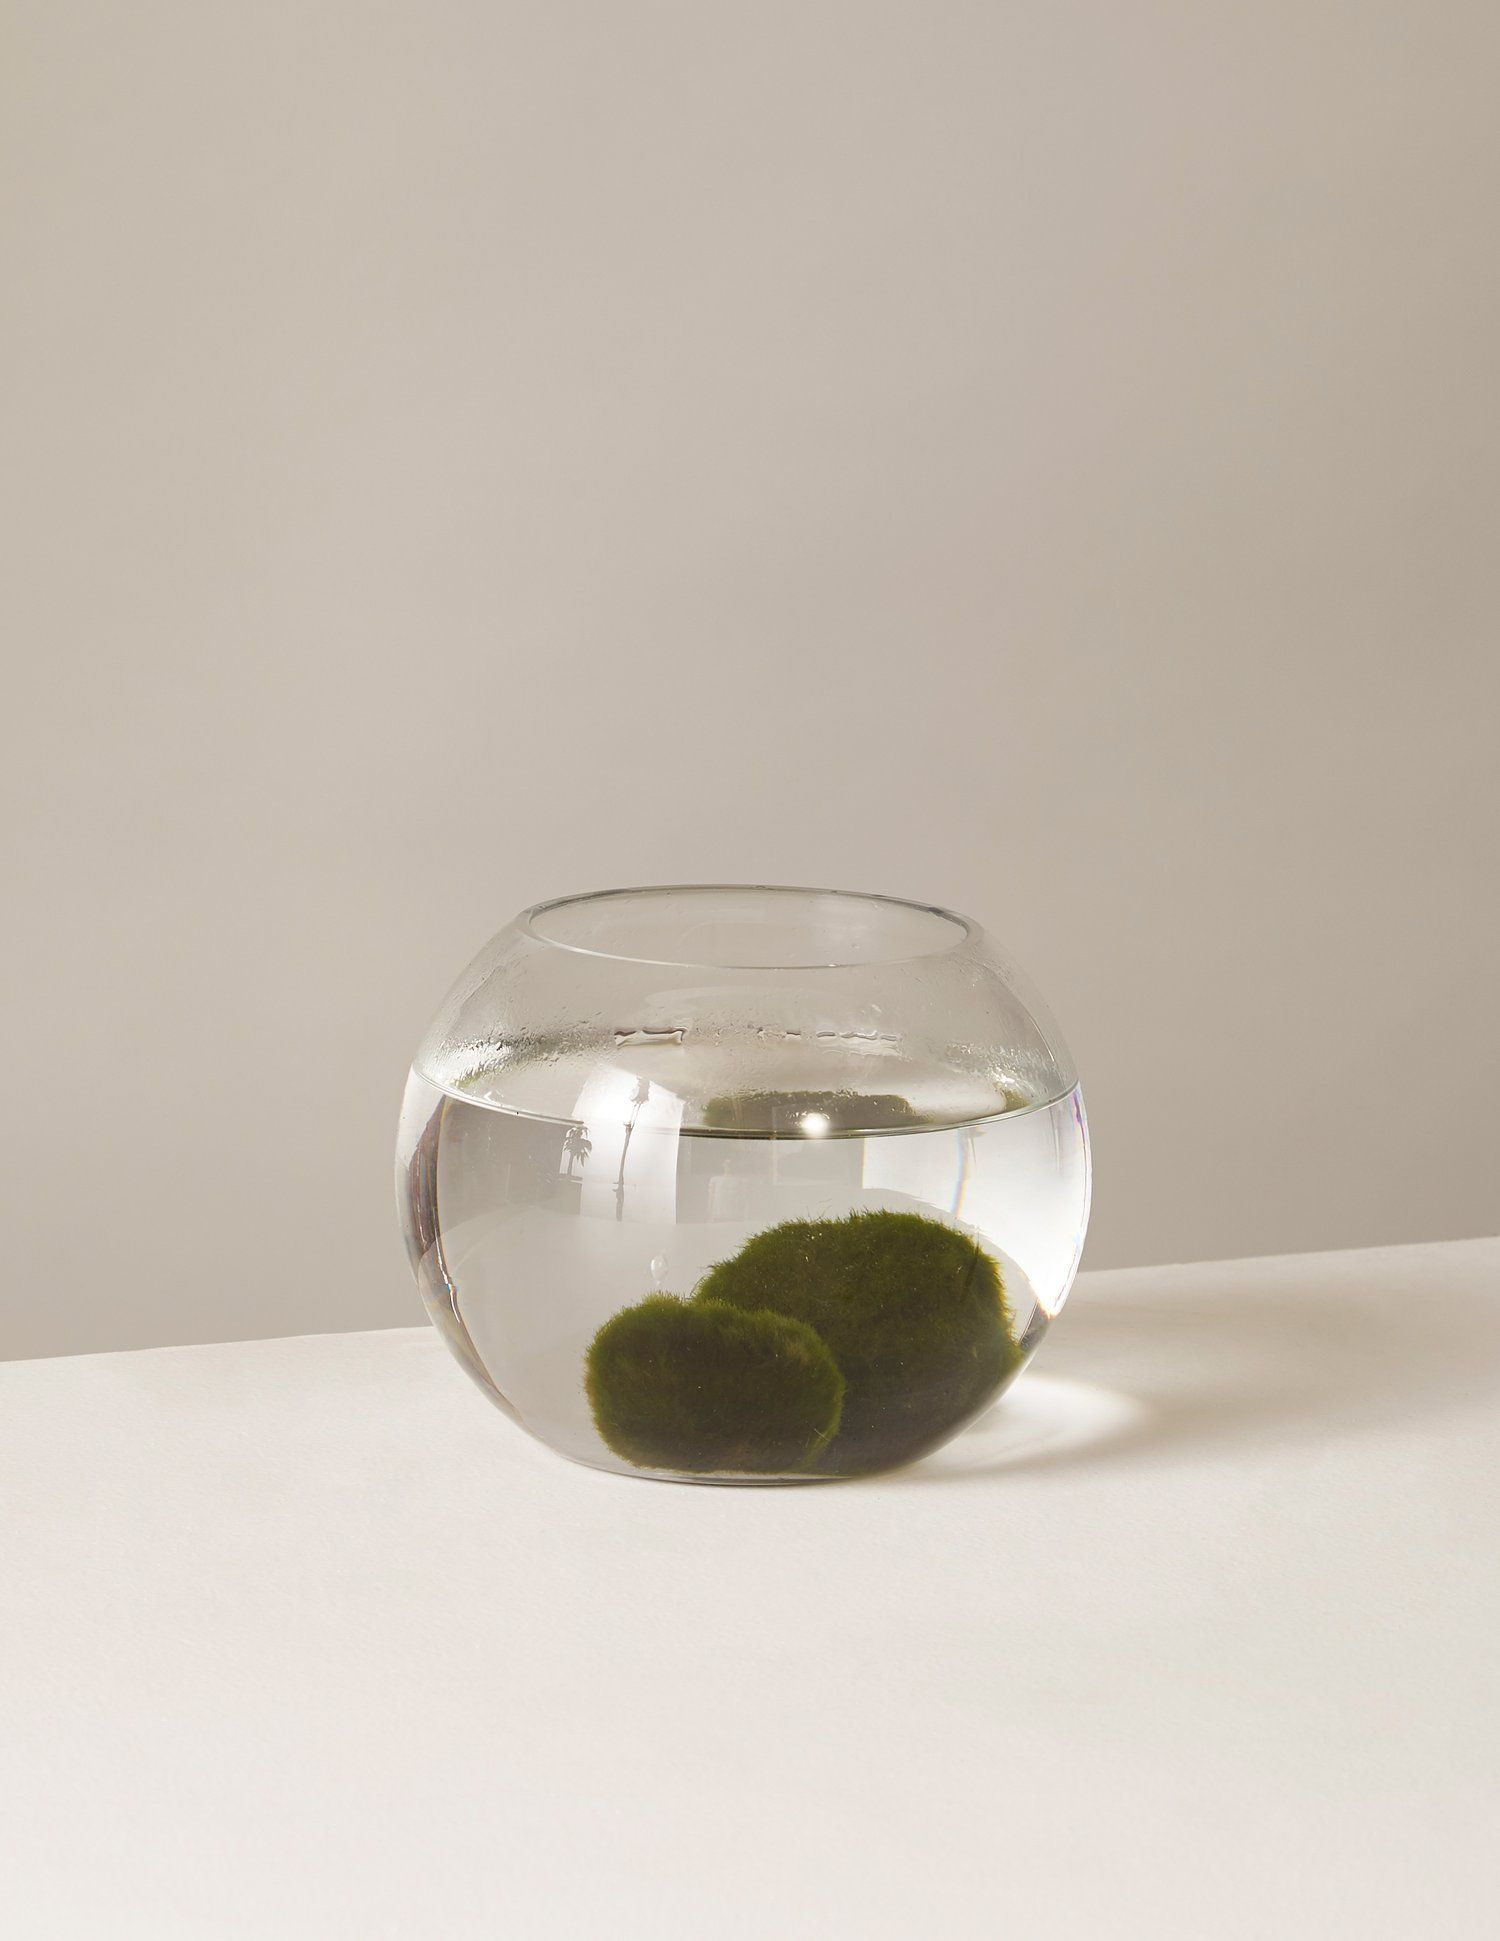 Marimo Moss Ball Kit Marimo Moss Ball Marimo Low Light Plants